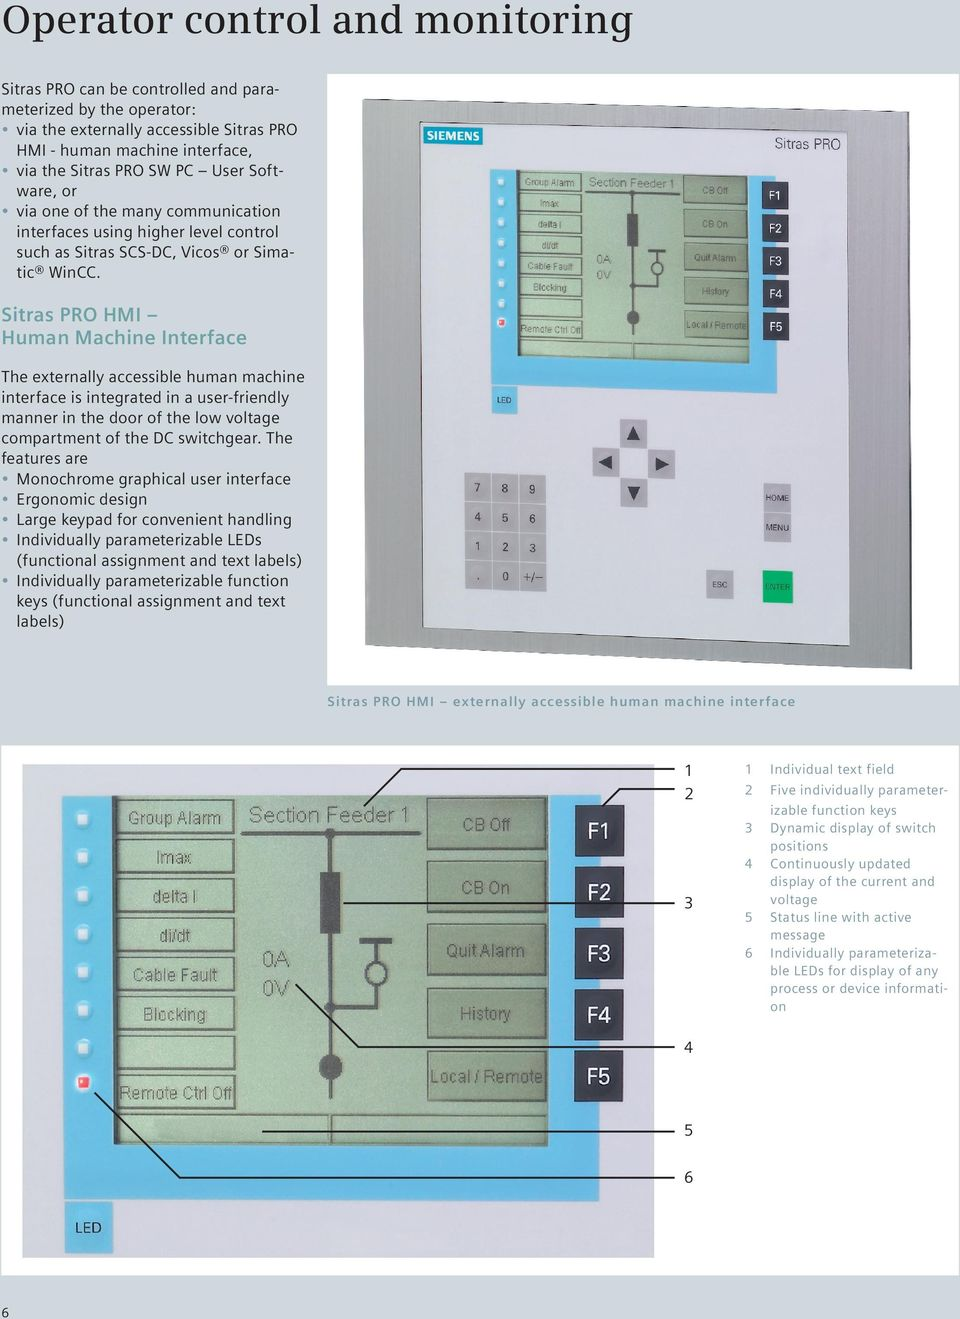 Permissible Ambient Temperature Operation Storage Transport Pdf Design Of A Human Machine Interface Hmi For Heartrate Monitor Sitras Pro The Externally Accessible Is Integrated In